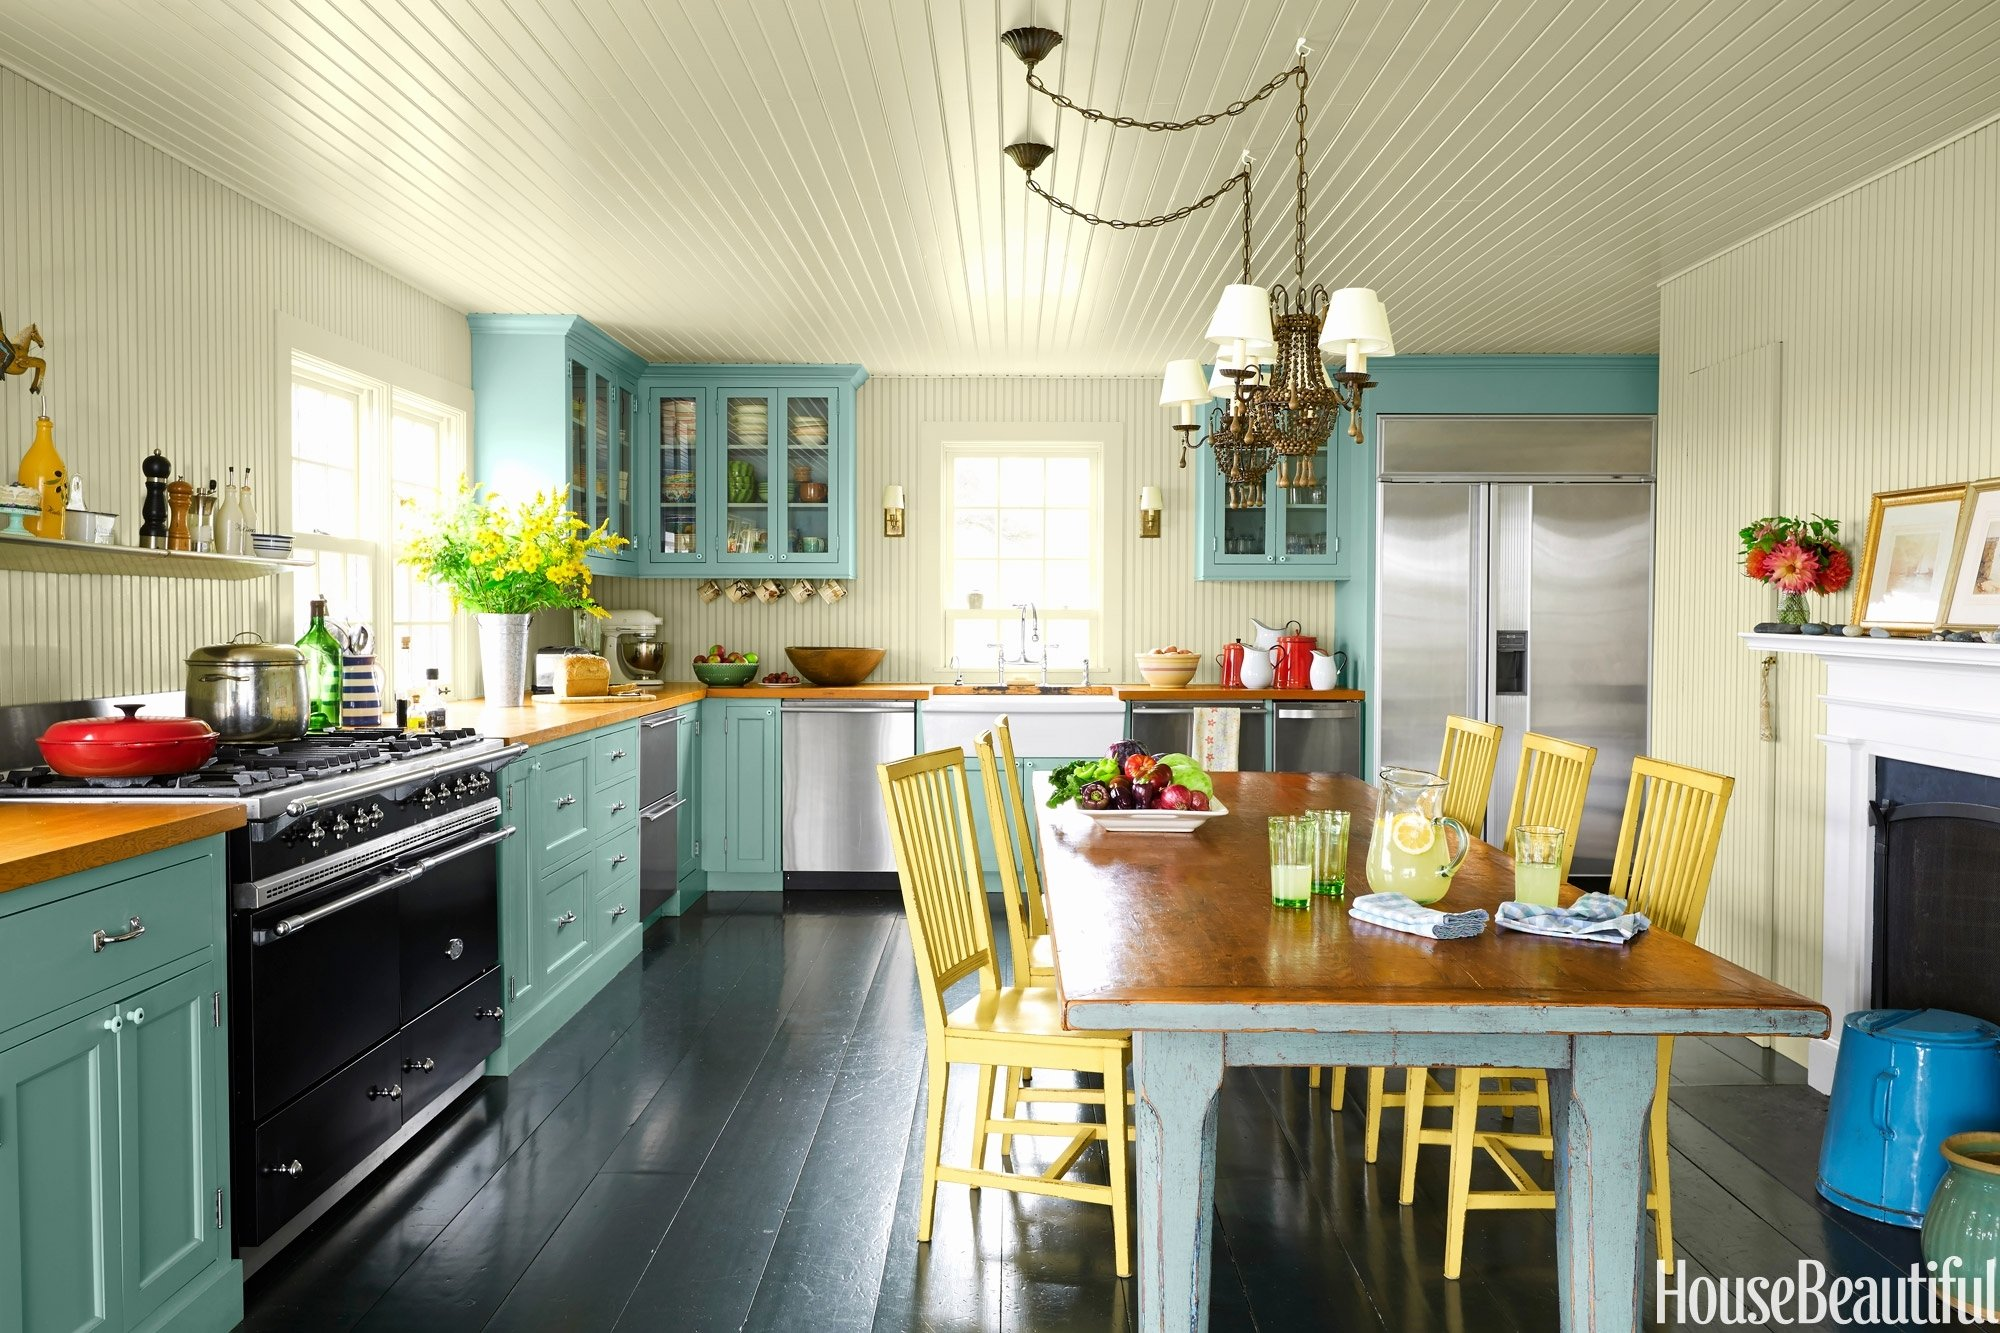 10 Amazing Kitchen Color Ideas For Small Kitchens modern kitchen paint colors ideas awesome kitchen color ideas for 2021